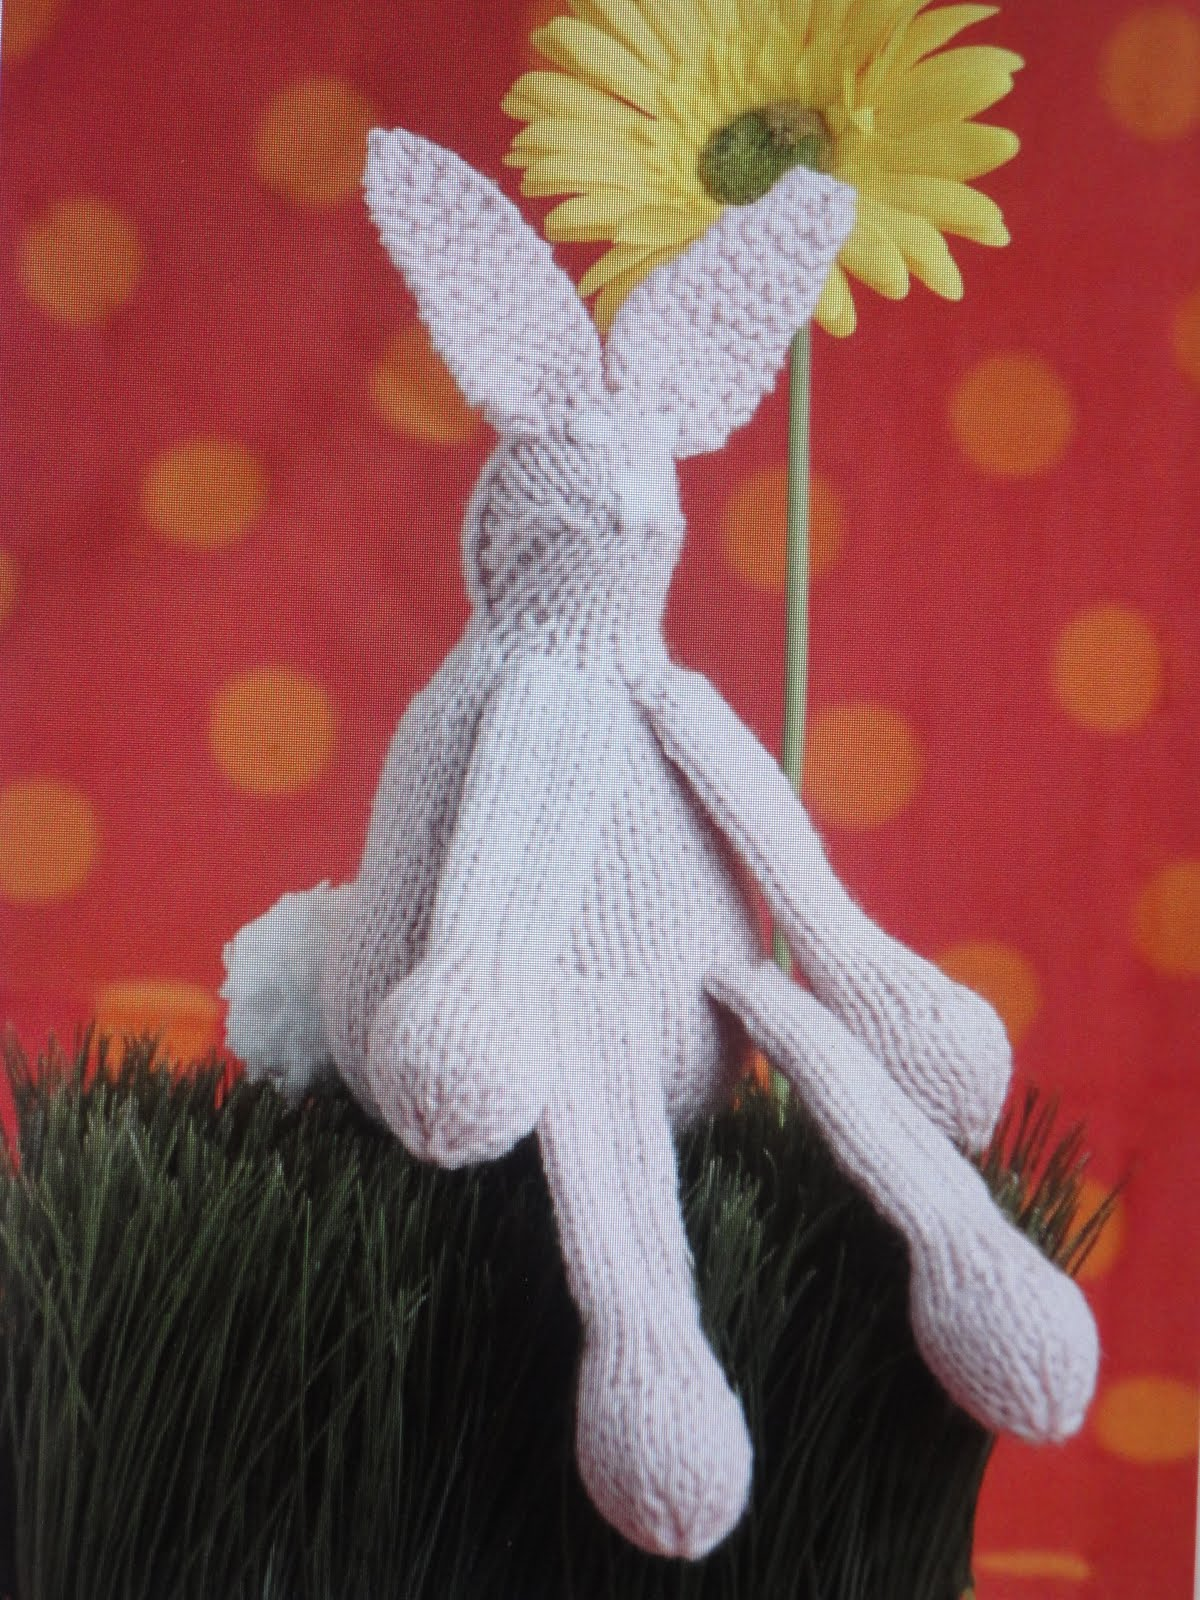 Knit Rabbit Pattern Free : Everyday life at leisure free easter bunny knit pattern